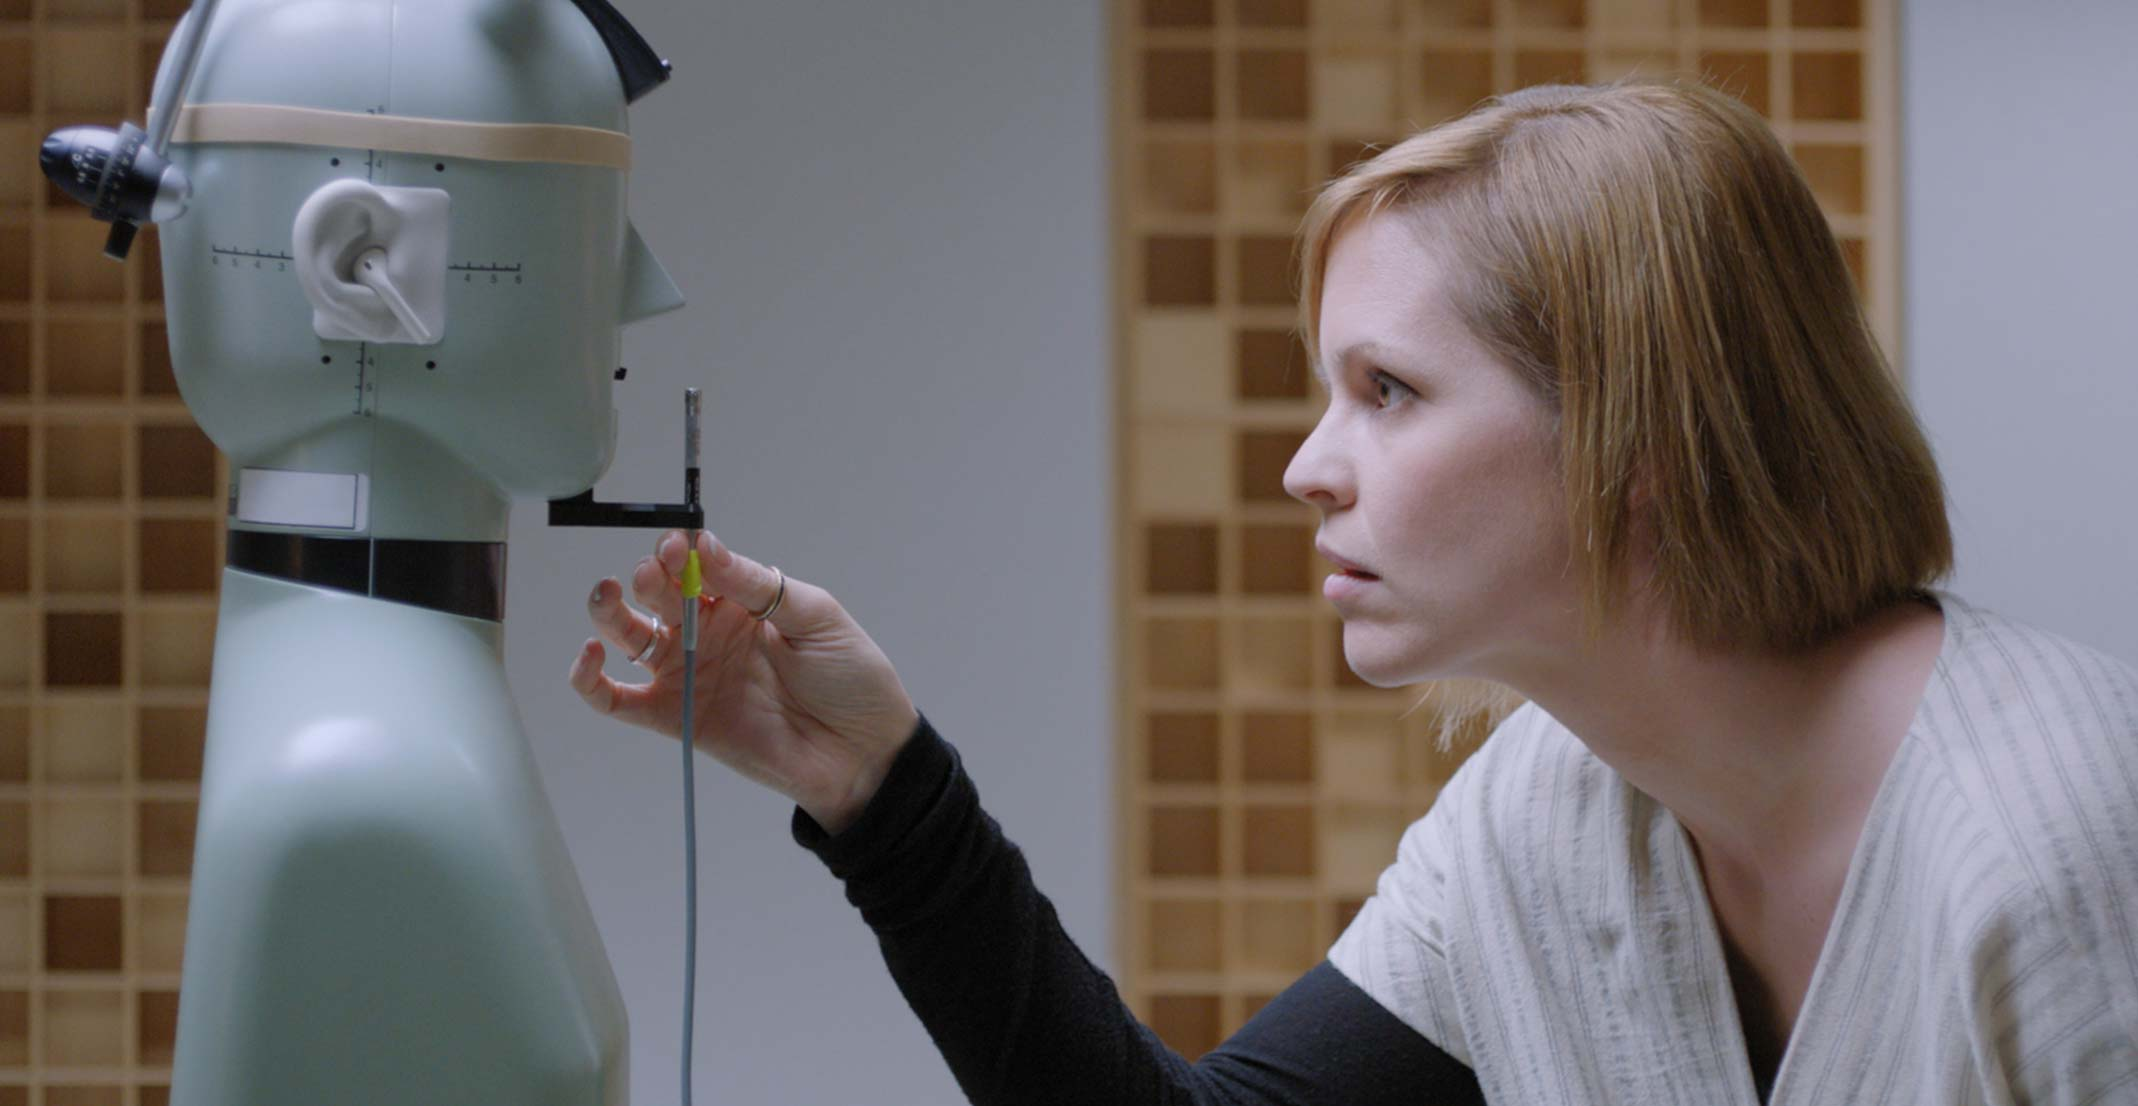 Suzie, a manager of an acoustic prototyping group at Apple, adjusts a microphone in front of a mannequin at an engineering lab in Cupertino.